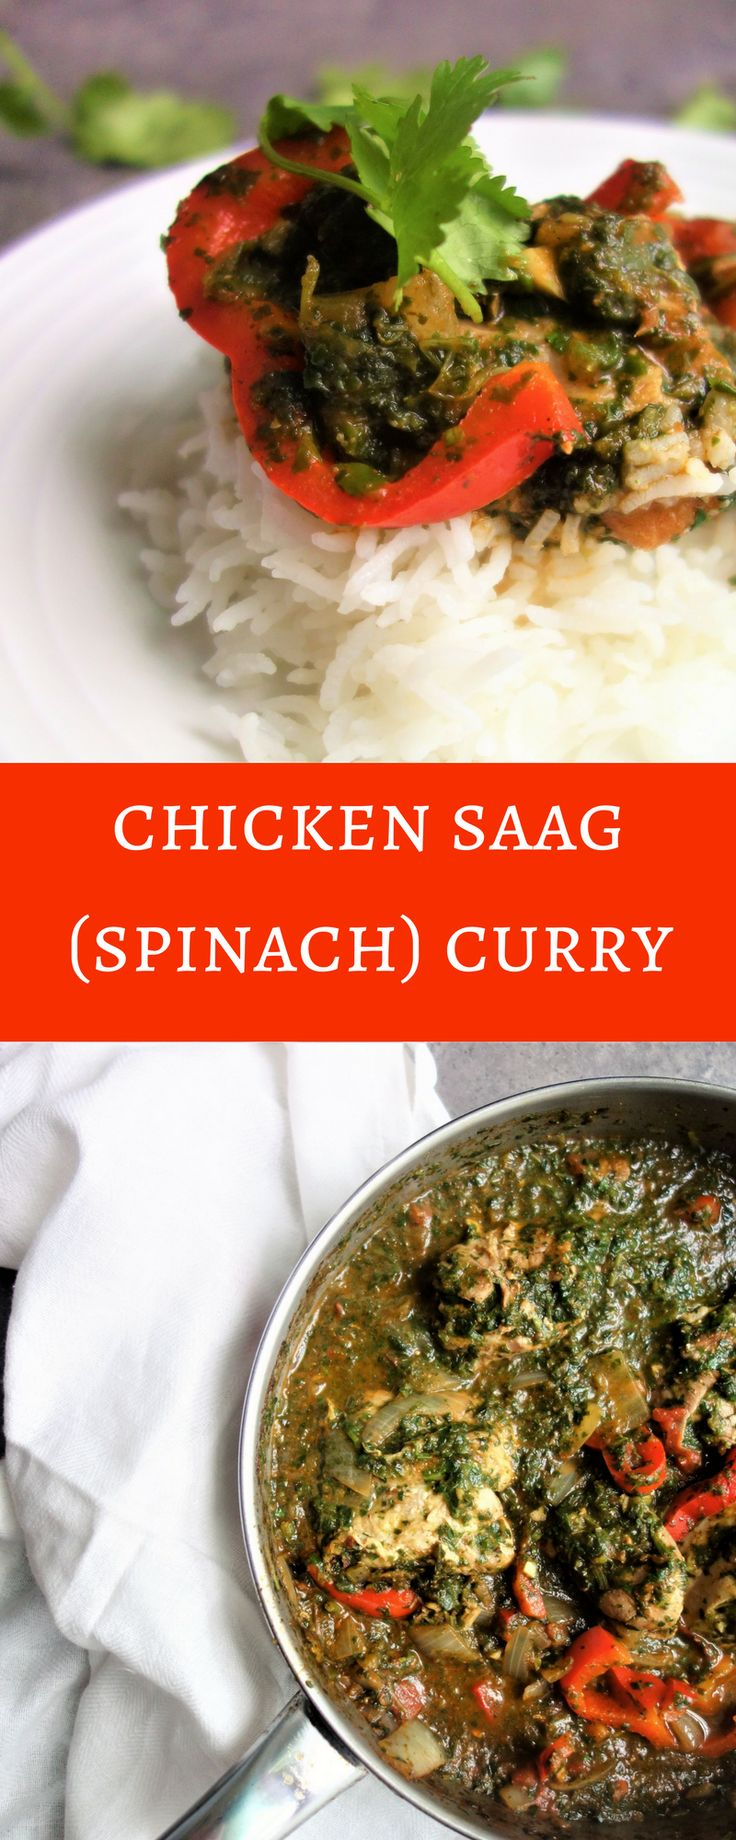 Easy to Make Chicken Saag Curry. chicken saag curry recipe, spinach curry recipe, chicken curry recipe, curry recipe easy, saag curry easy, saag curry vegan, spinach & chicken curry, easy indian recipes, healthy indian recipe, chicken saag curry healthy, healthy recipes